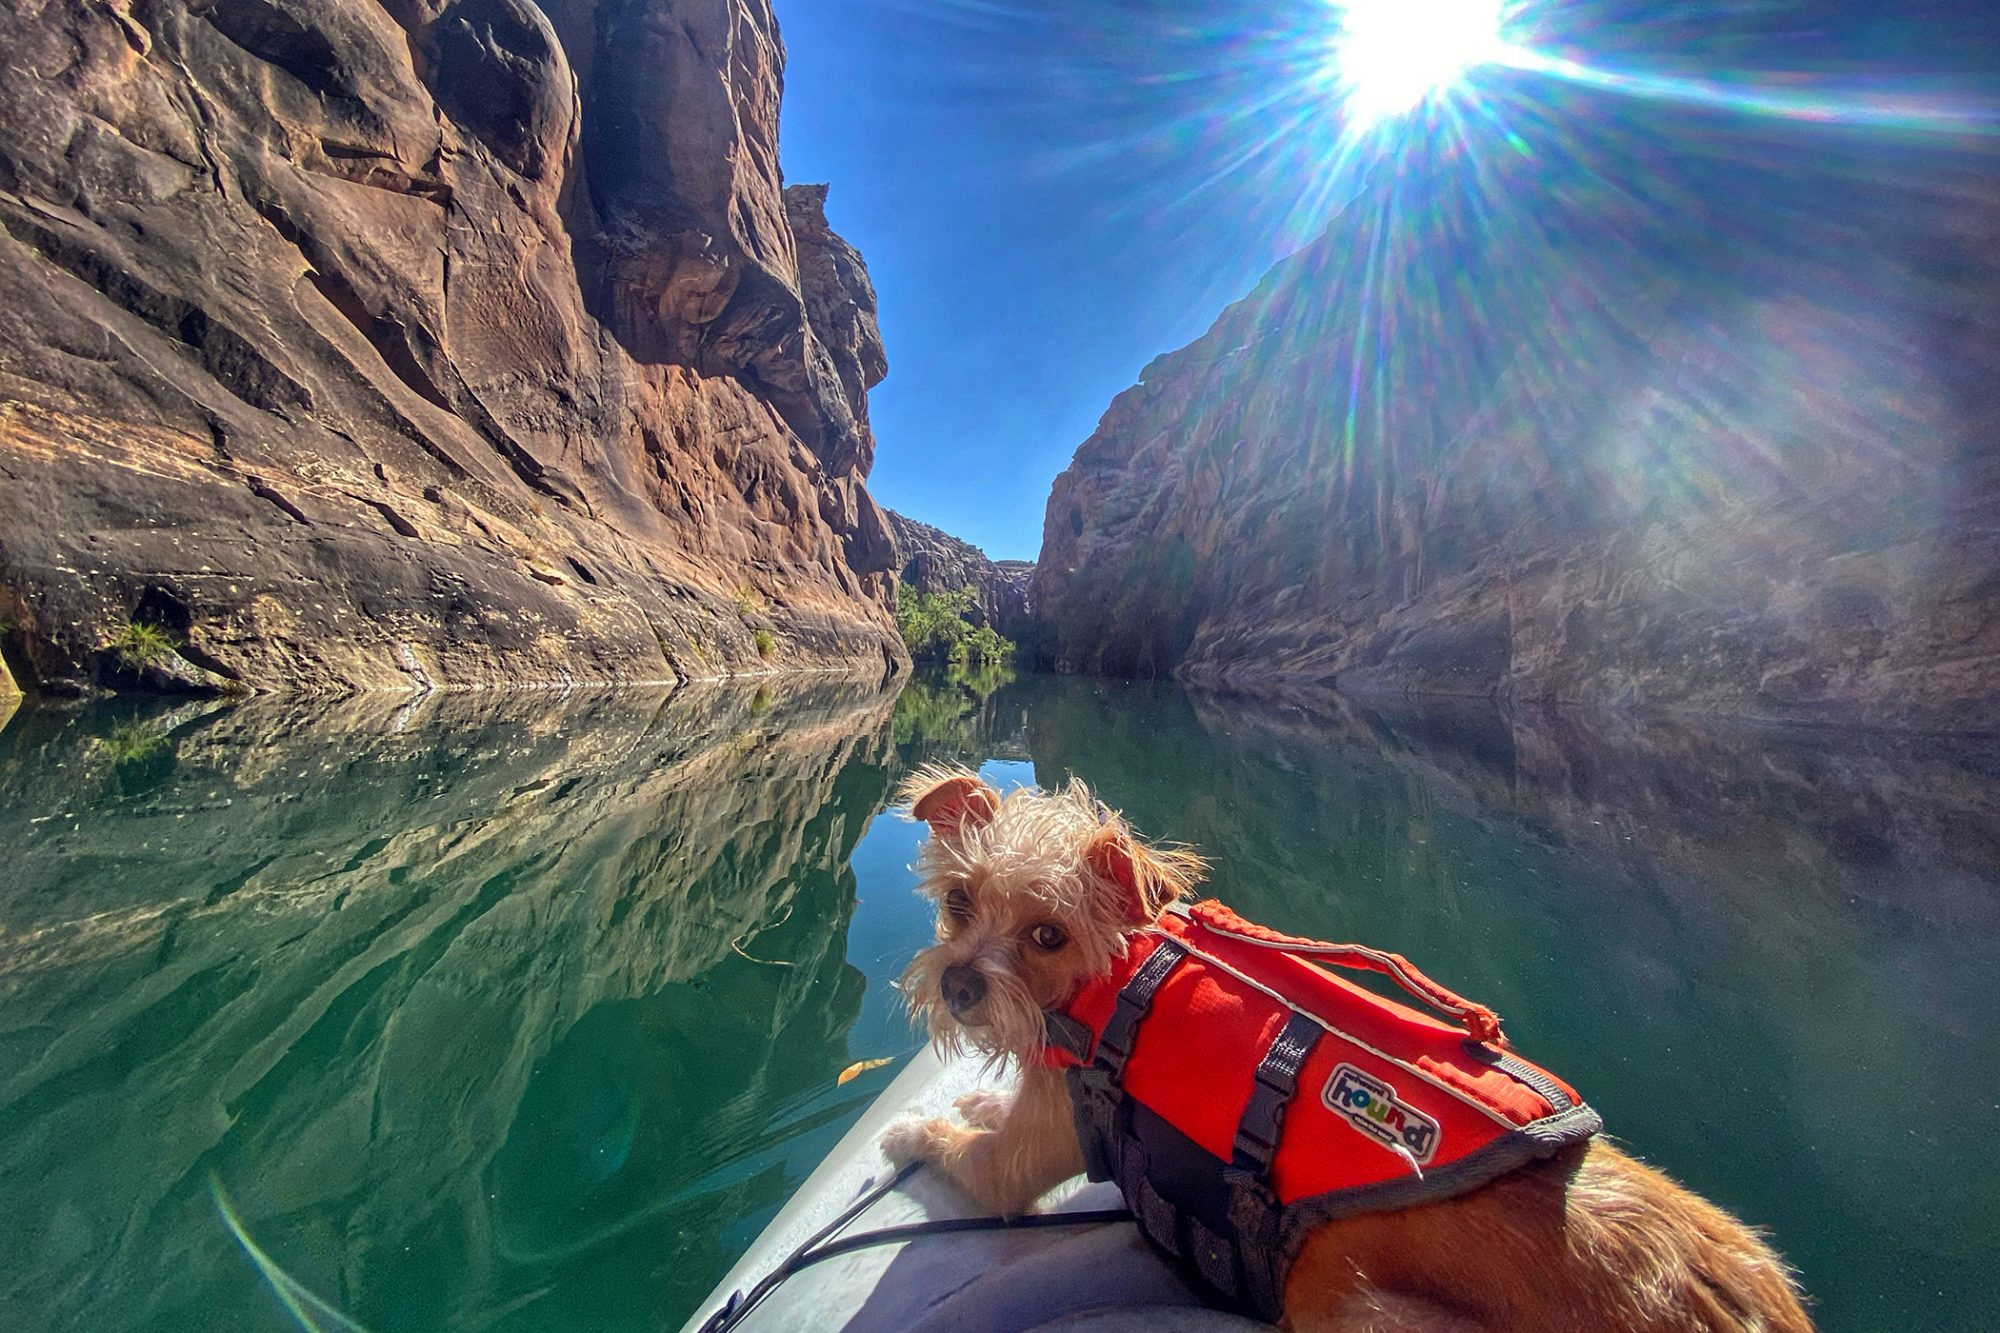 Dog in life jacket lays on end of canoe while coasting down river